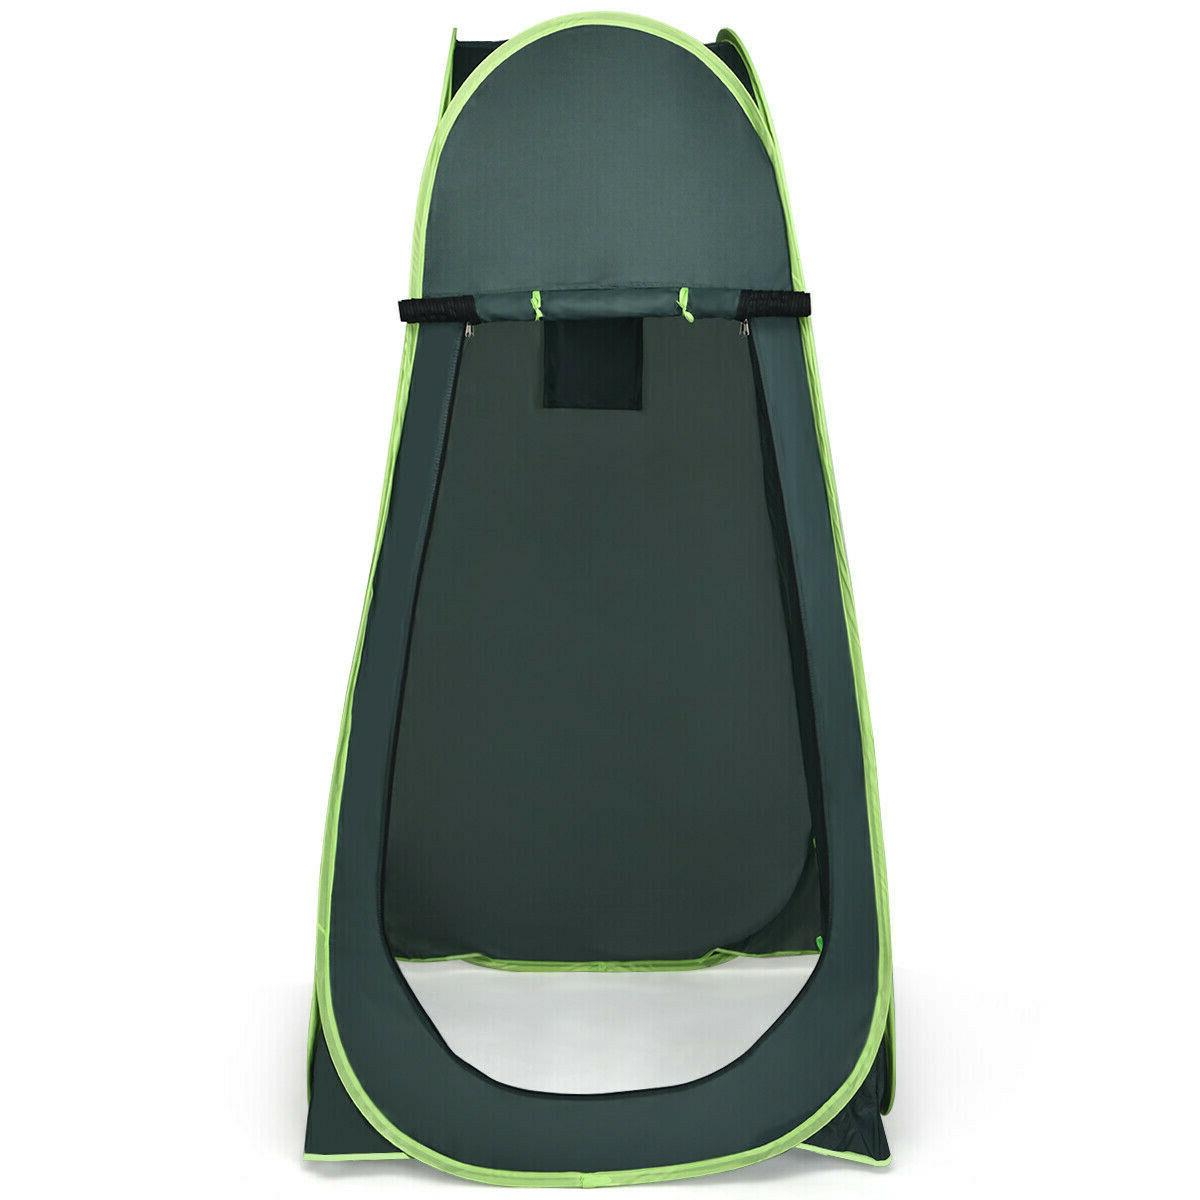 Up Tent Camping Shower Privacy Changing